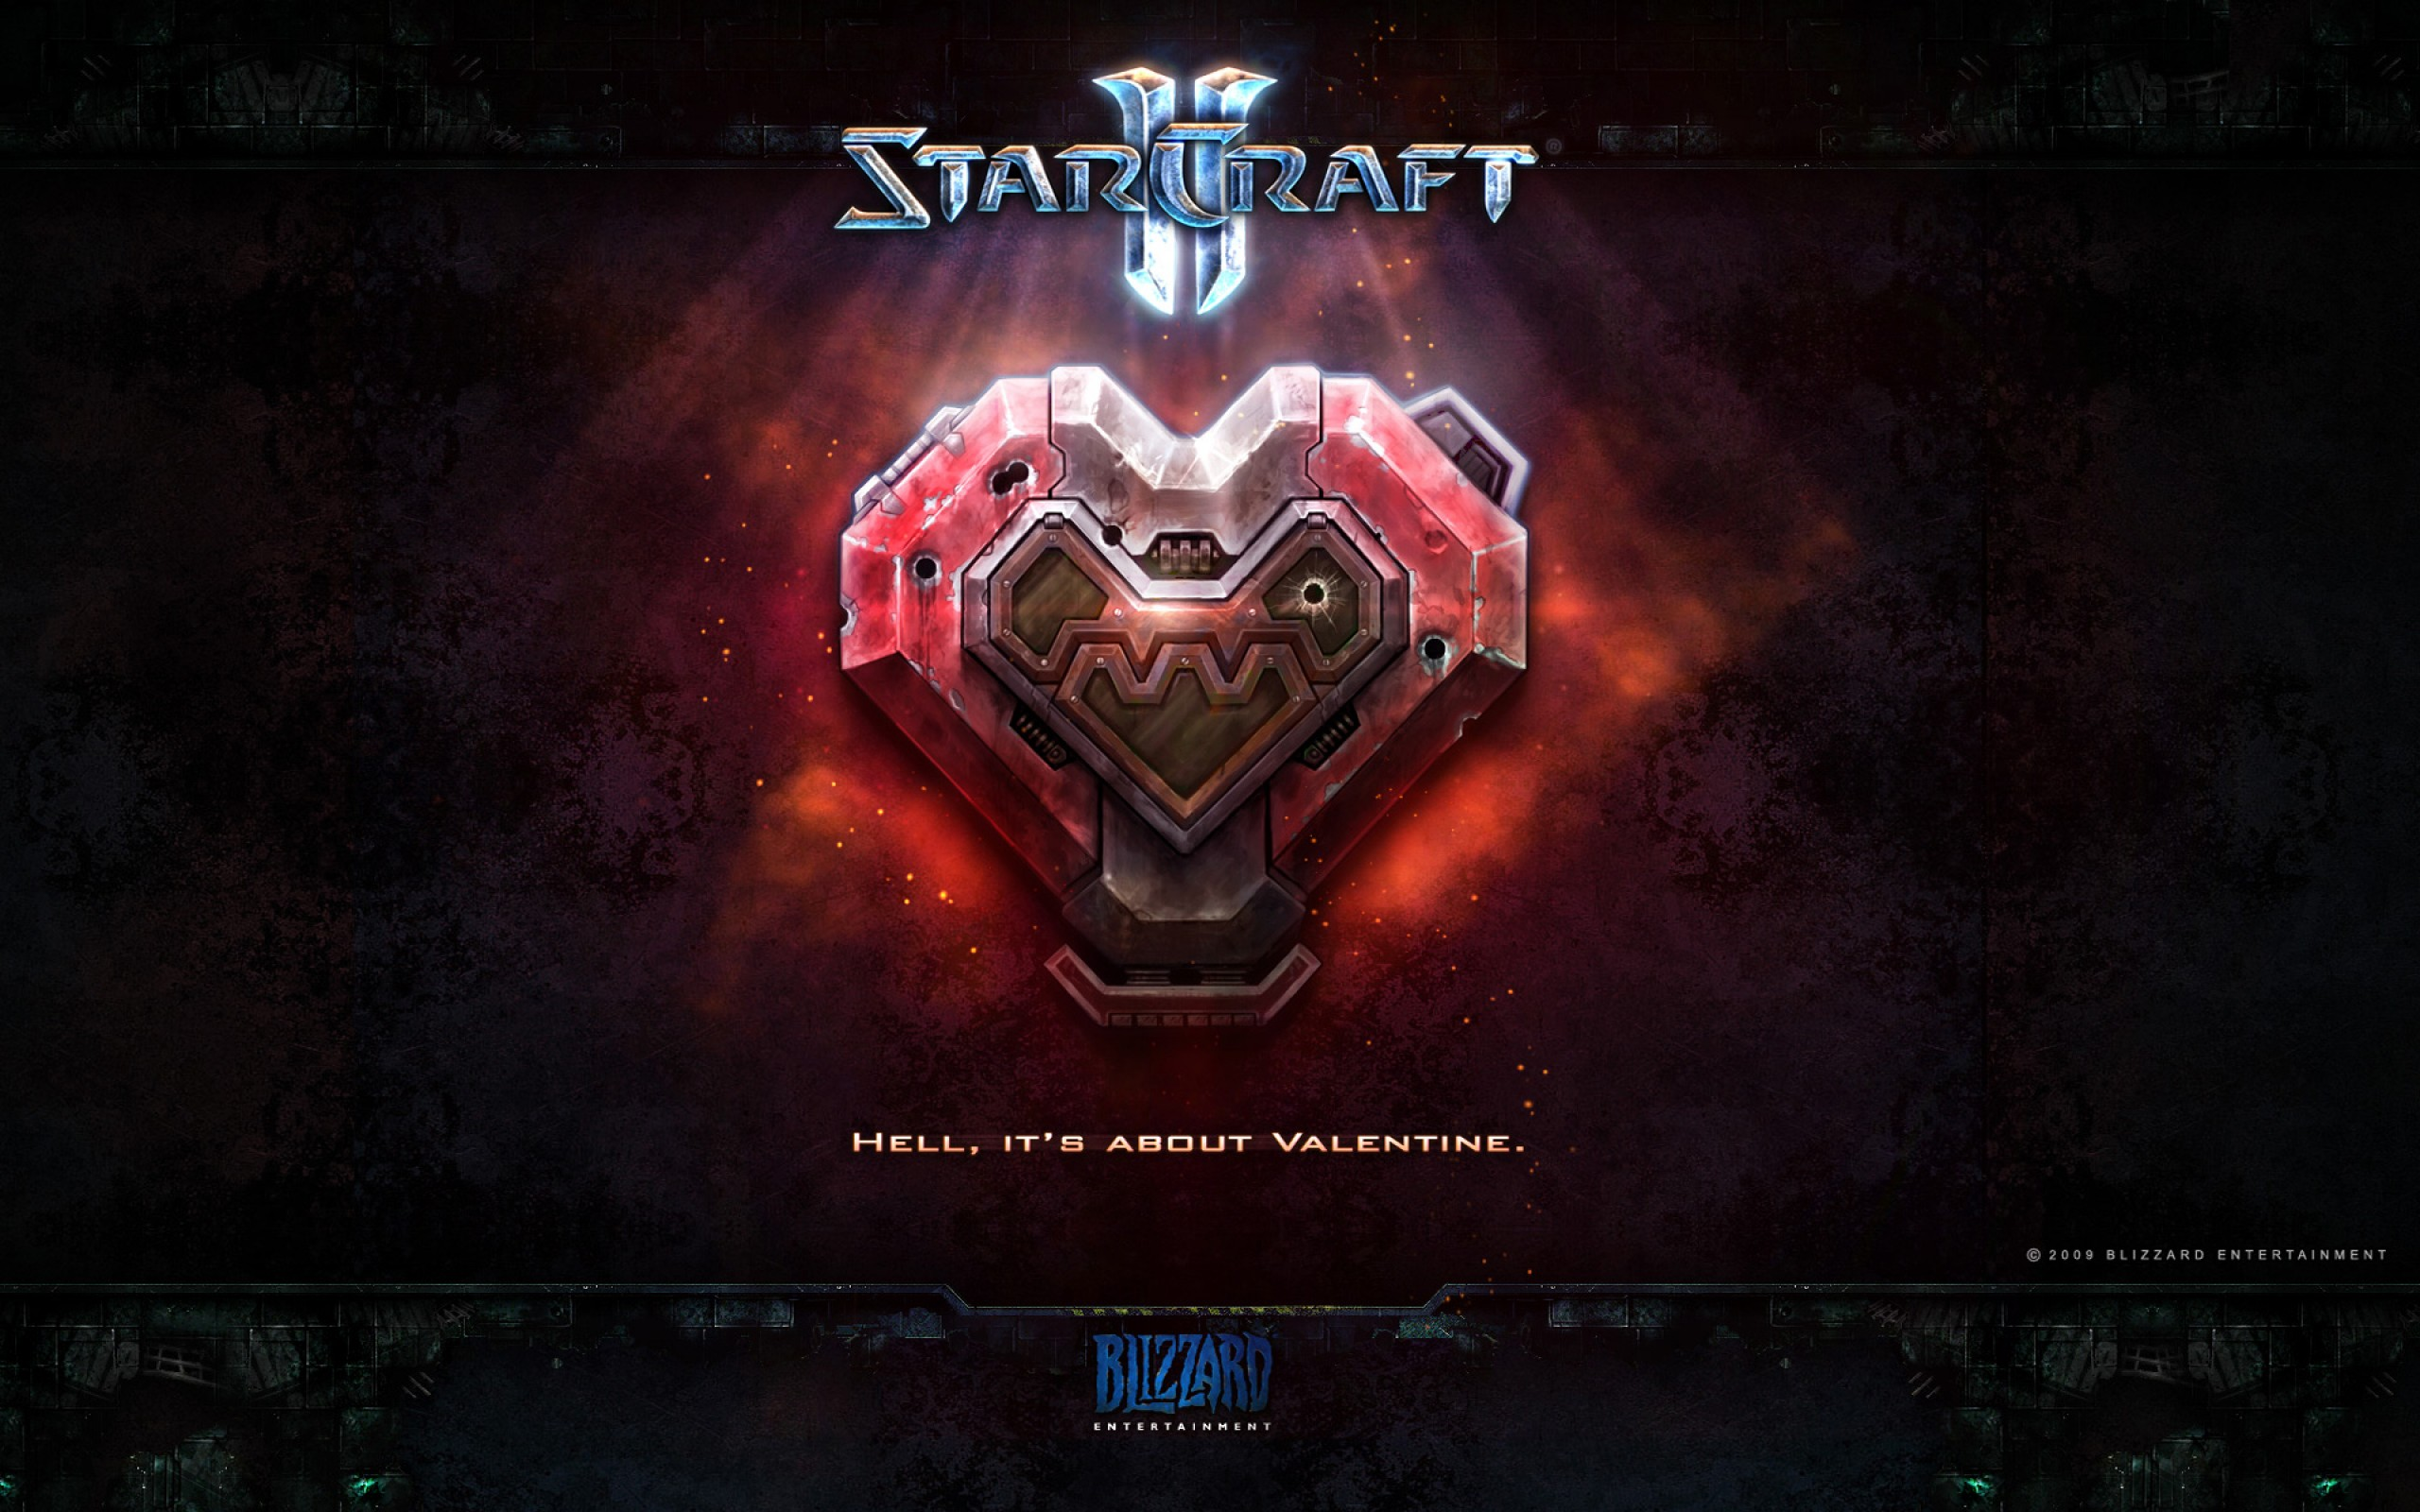 Starcraft 2 Heart of the Swarm wallpaper 3